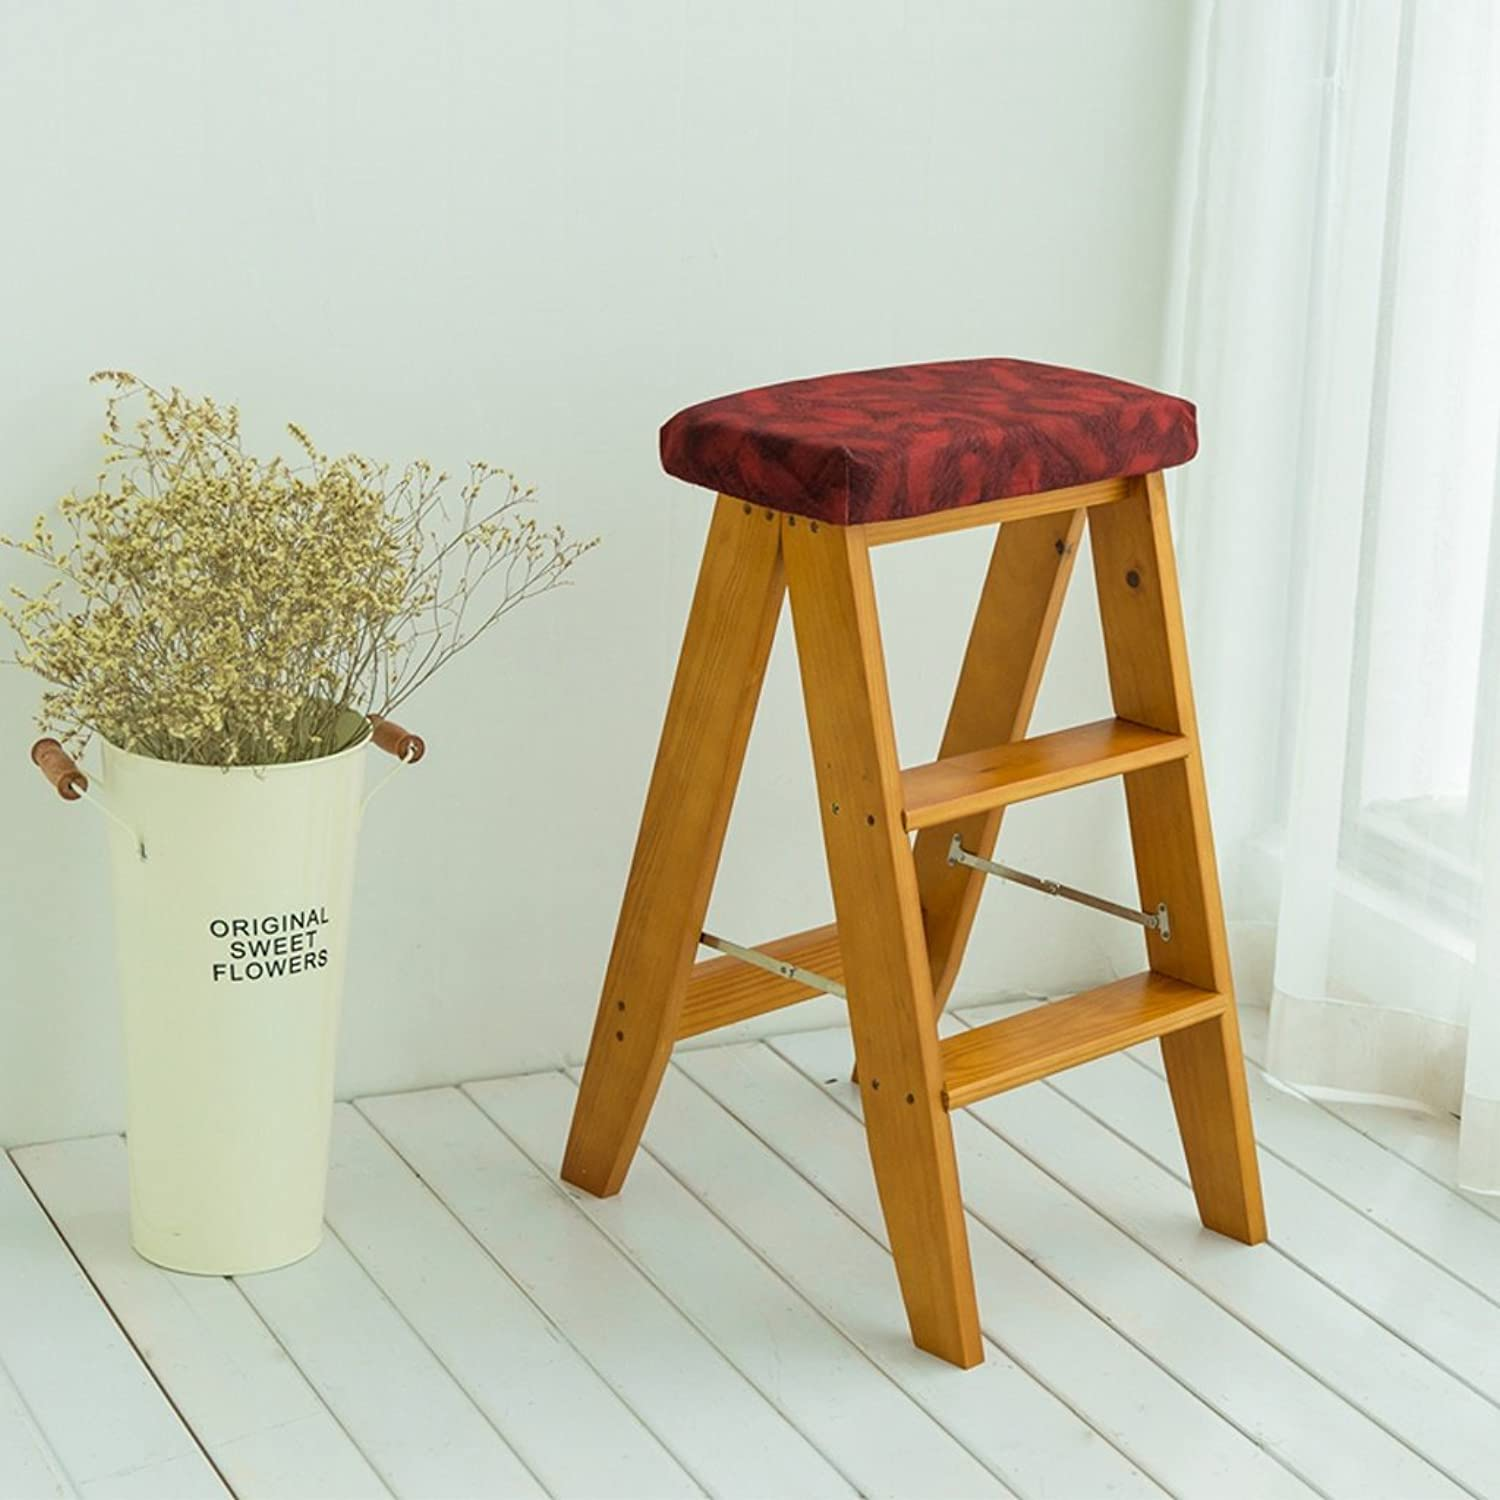 2 Step Ladder Solid Wood Folding Ladder Portable Household Kitchen Cutting Table Stool Chair Bar Stool Furniture (color   C, Size   343260cm)